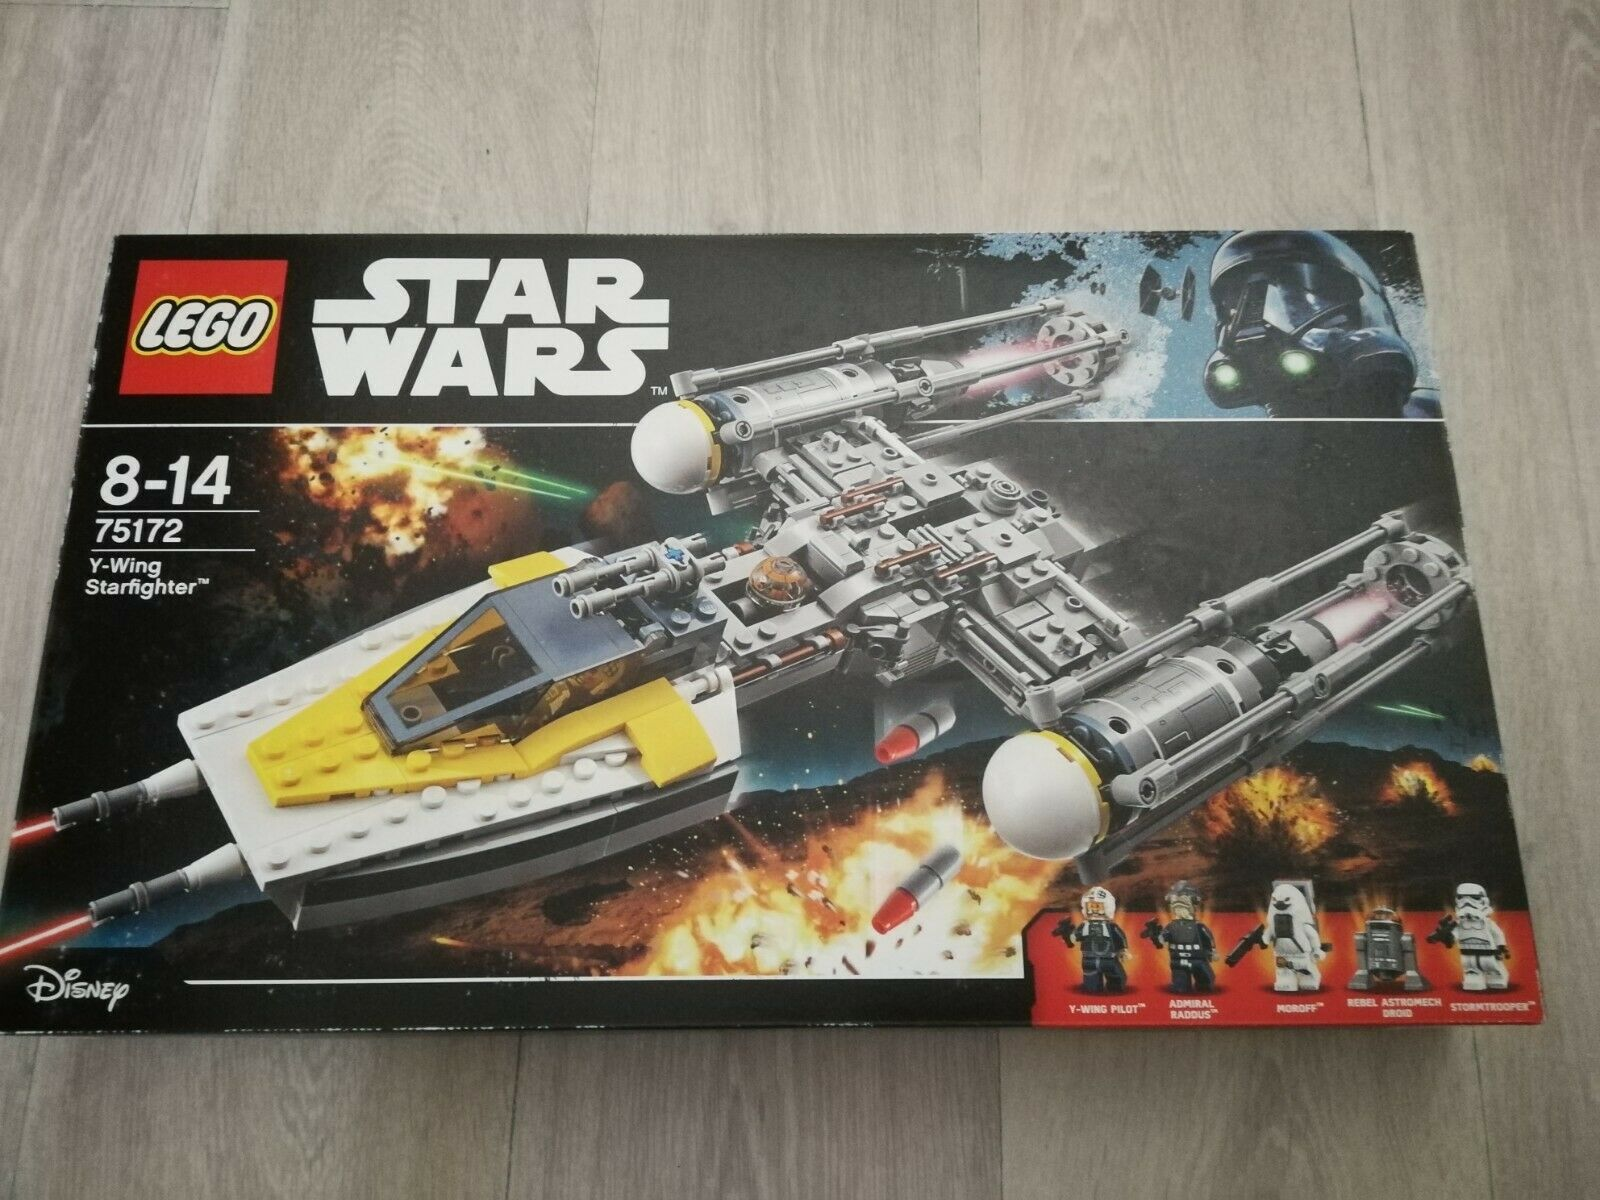 Lego Star Wars 75172 Y-wing Starfighter comme neuf